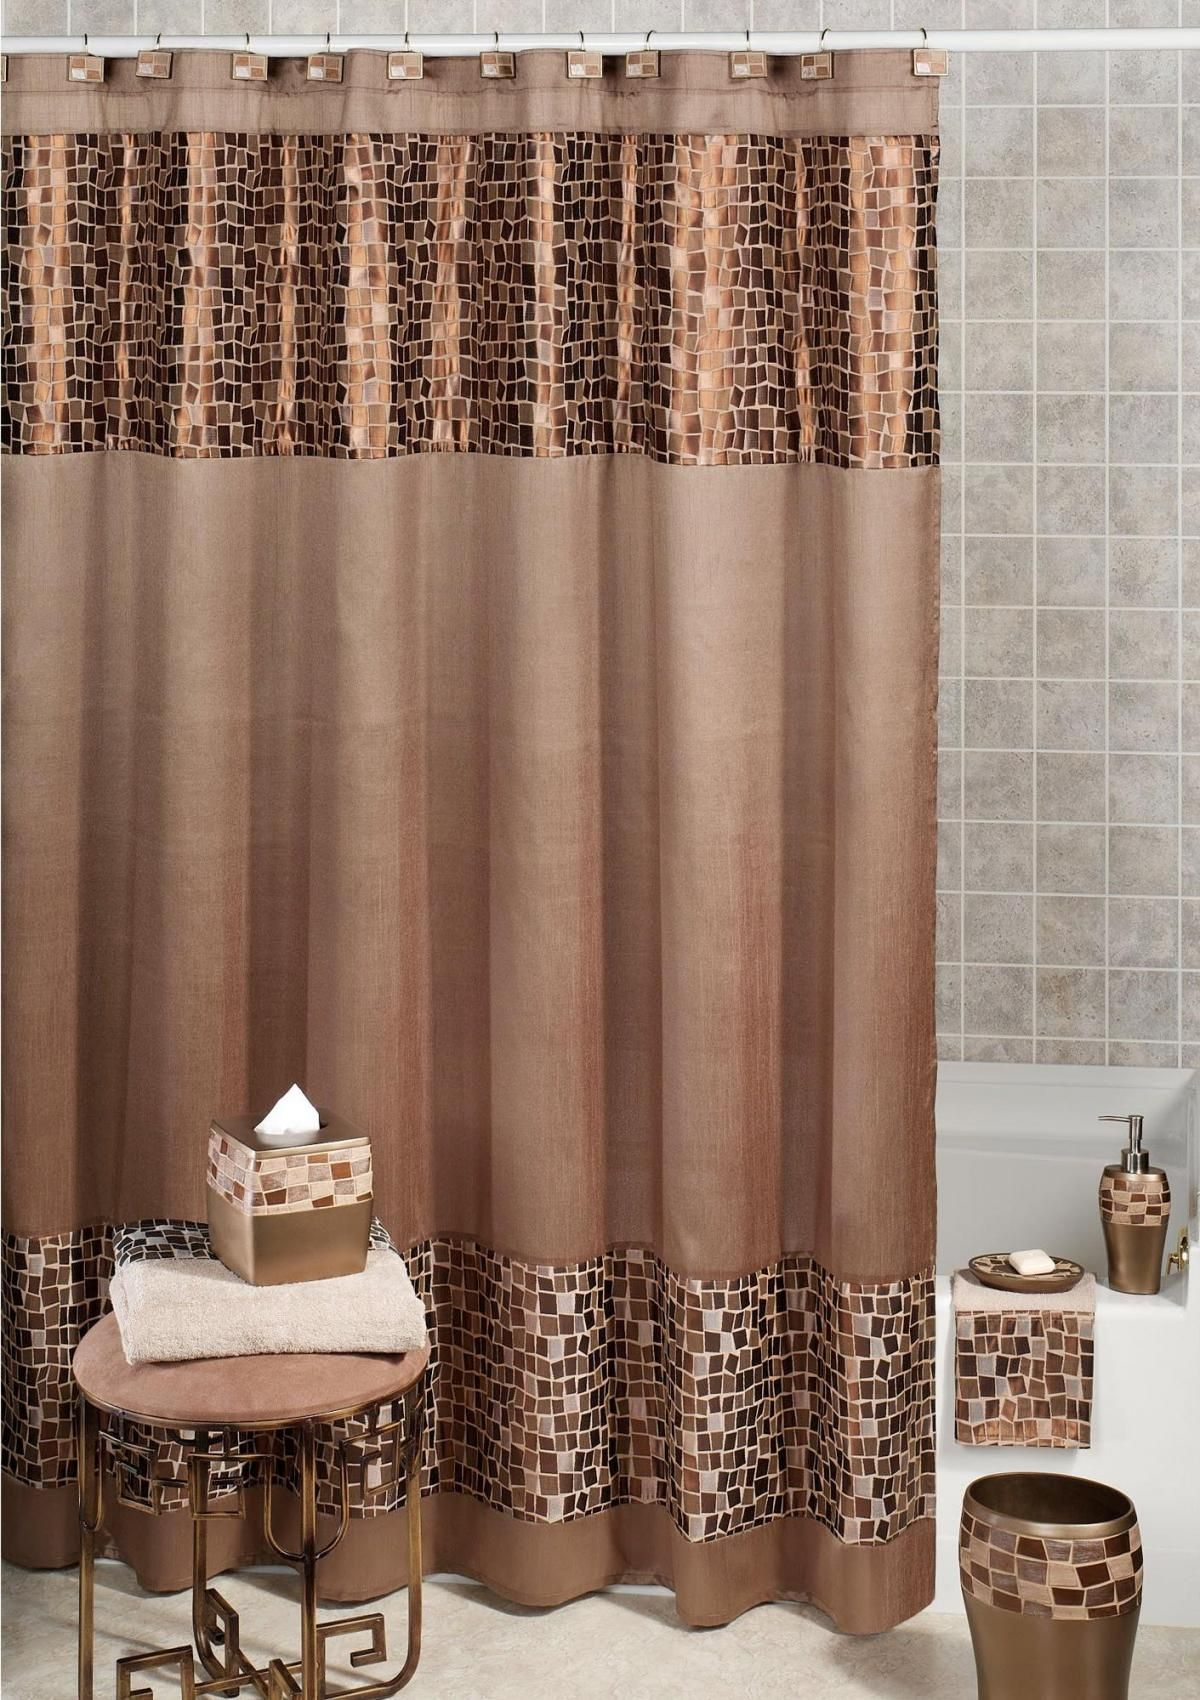 Remarkable Fabric Shower Curtains for Elegant Bathroom